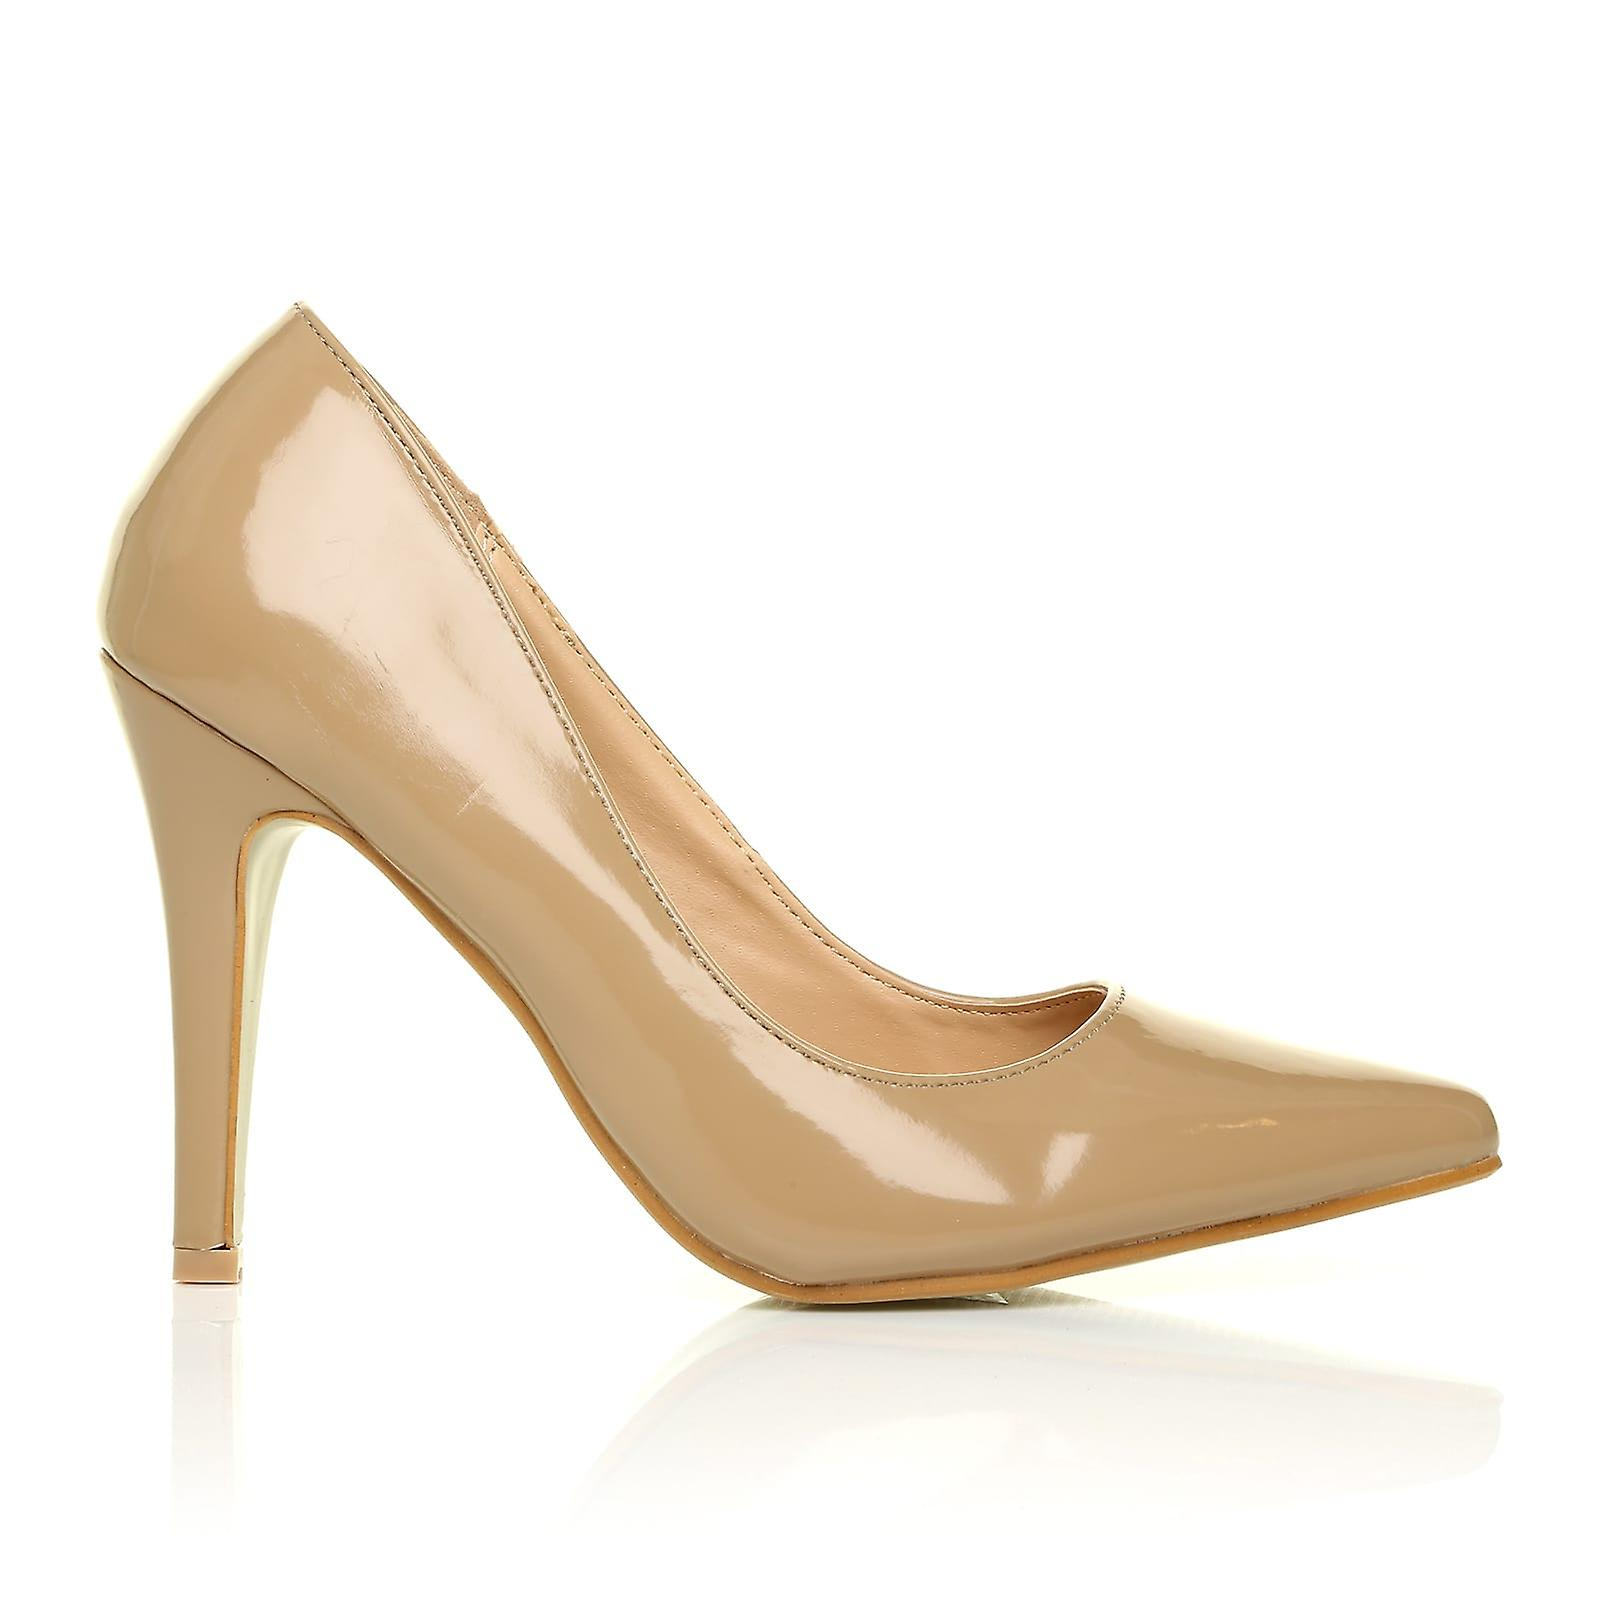 DARCY Dark Nude Pointed Patent PU Leather Stilleto High Heel Pointed Nude Court Shoes 97b602